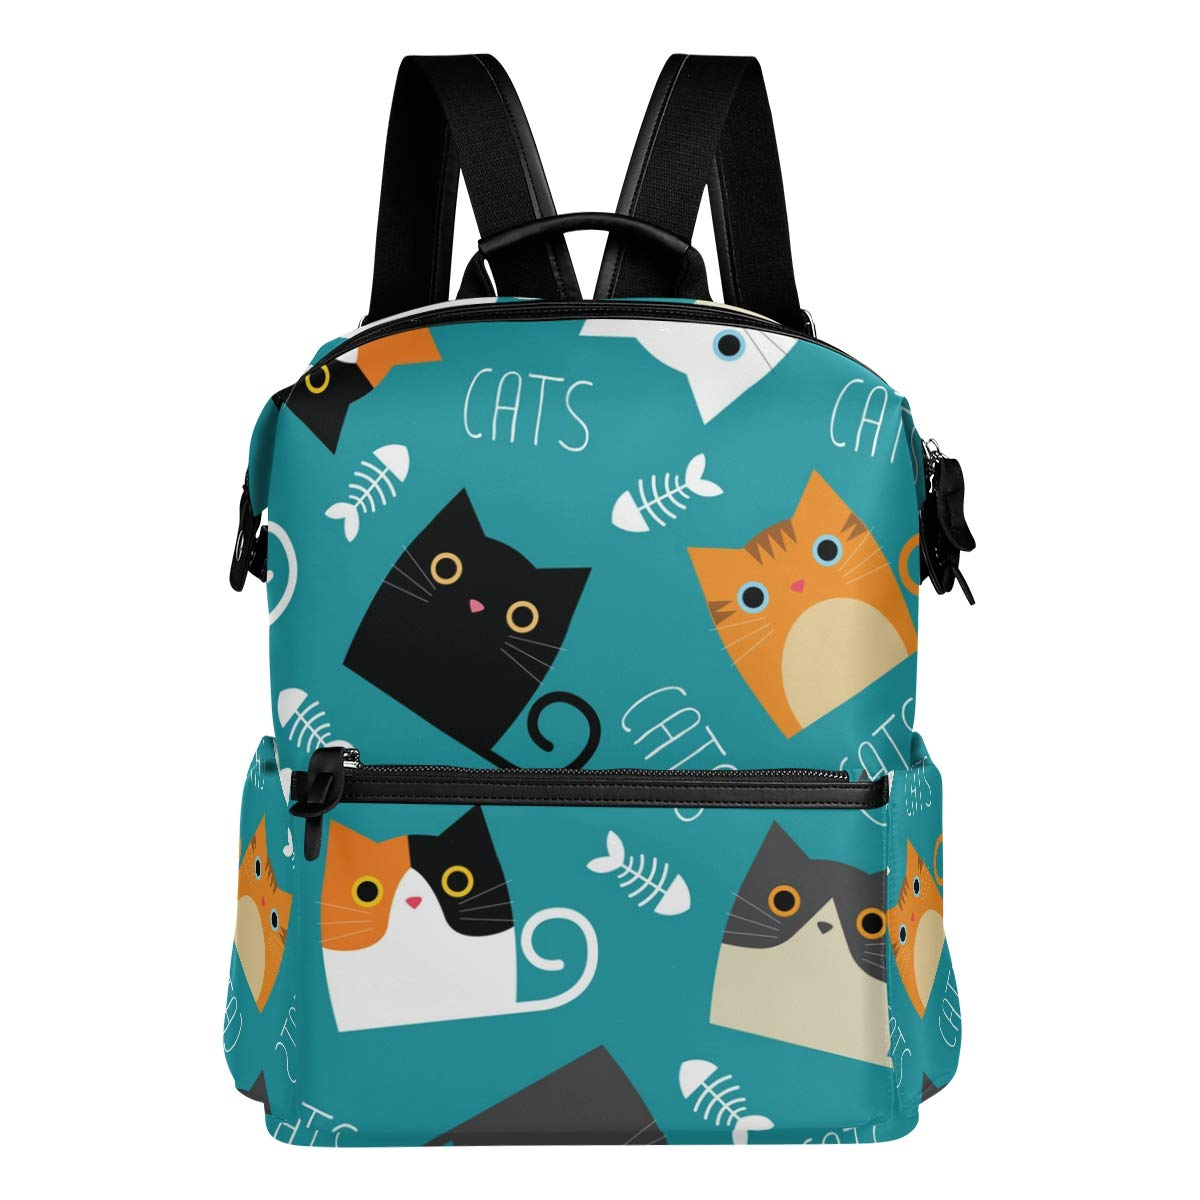 Laptop Backpack, Cat Large Cute School Bag Lightweight Waterproof Leather Travel Hiking Shoulder BookBag Durable Computer Bag Casual Daypack for Women Men by Mosica